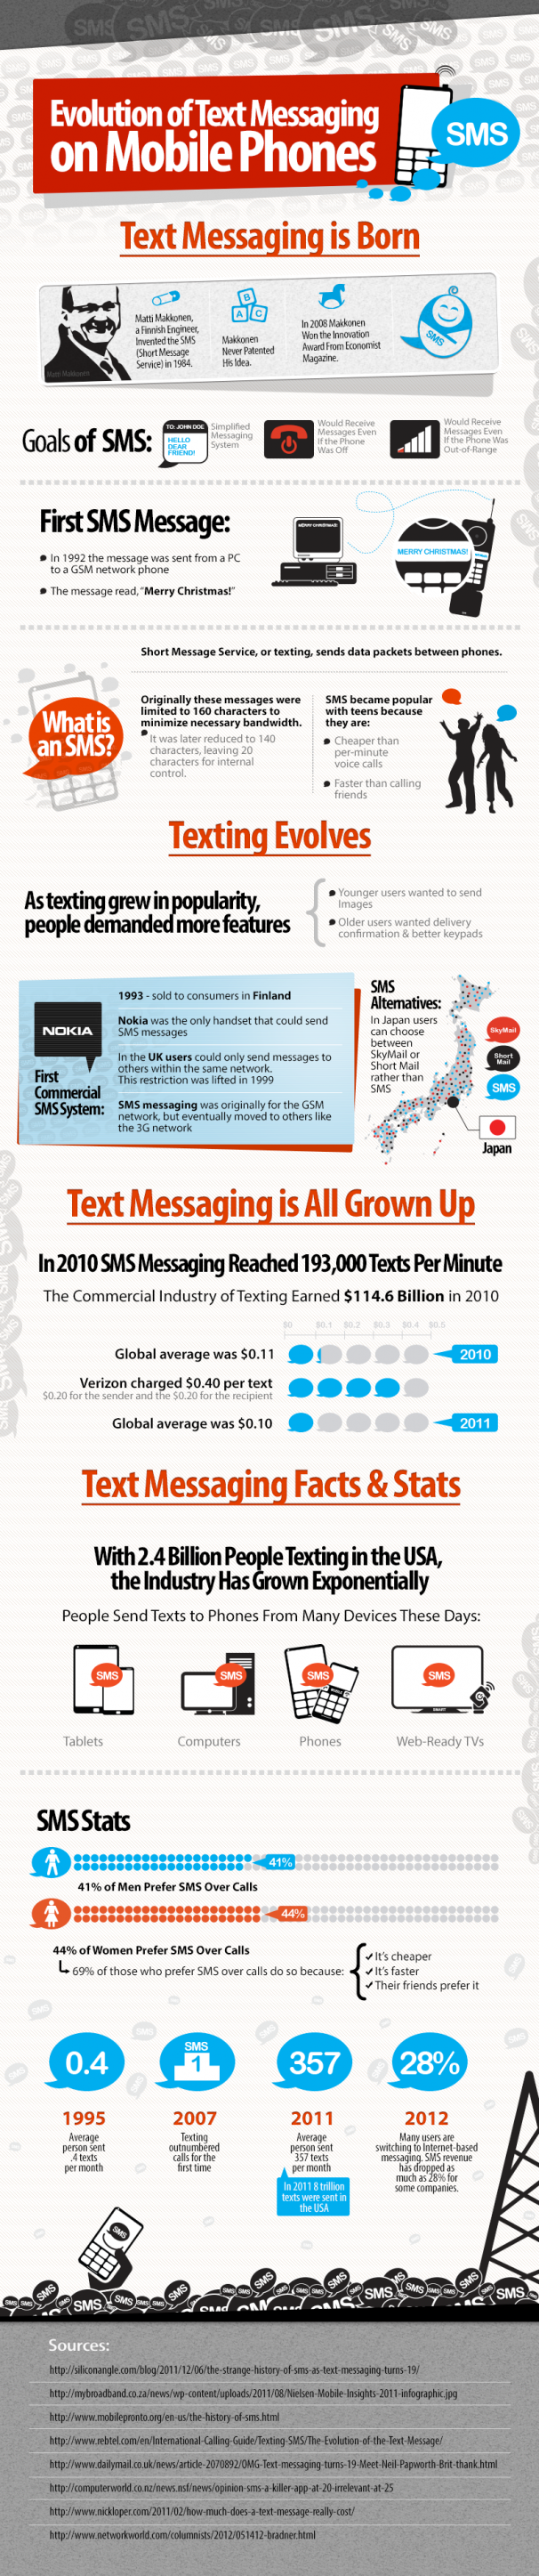 History of Text Messaging